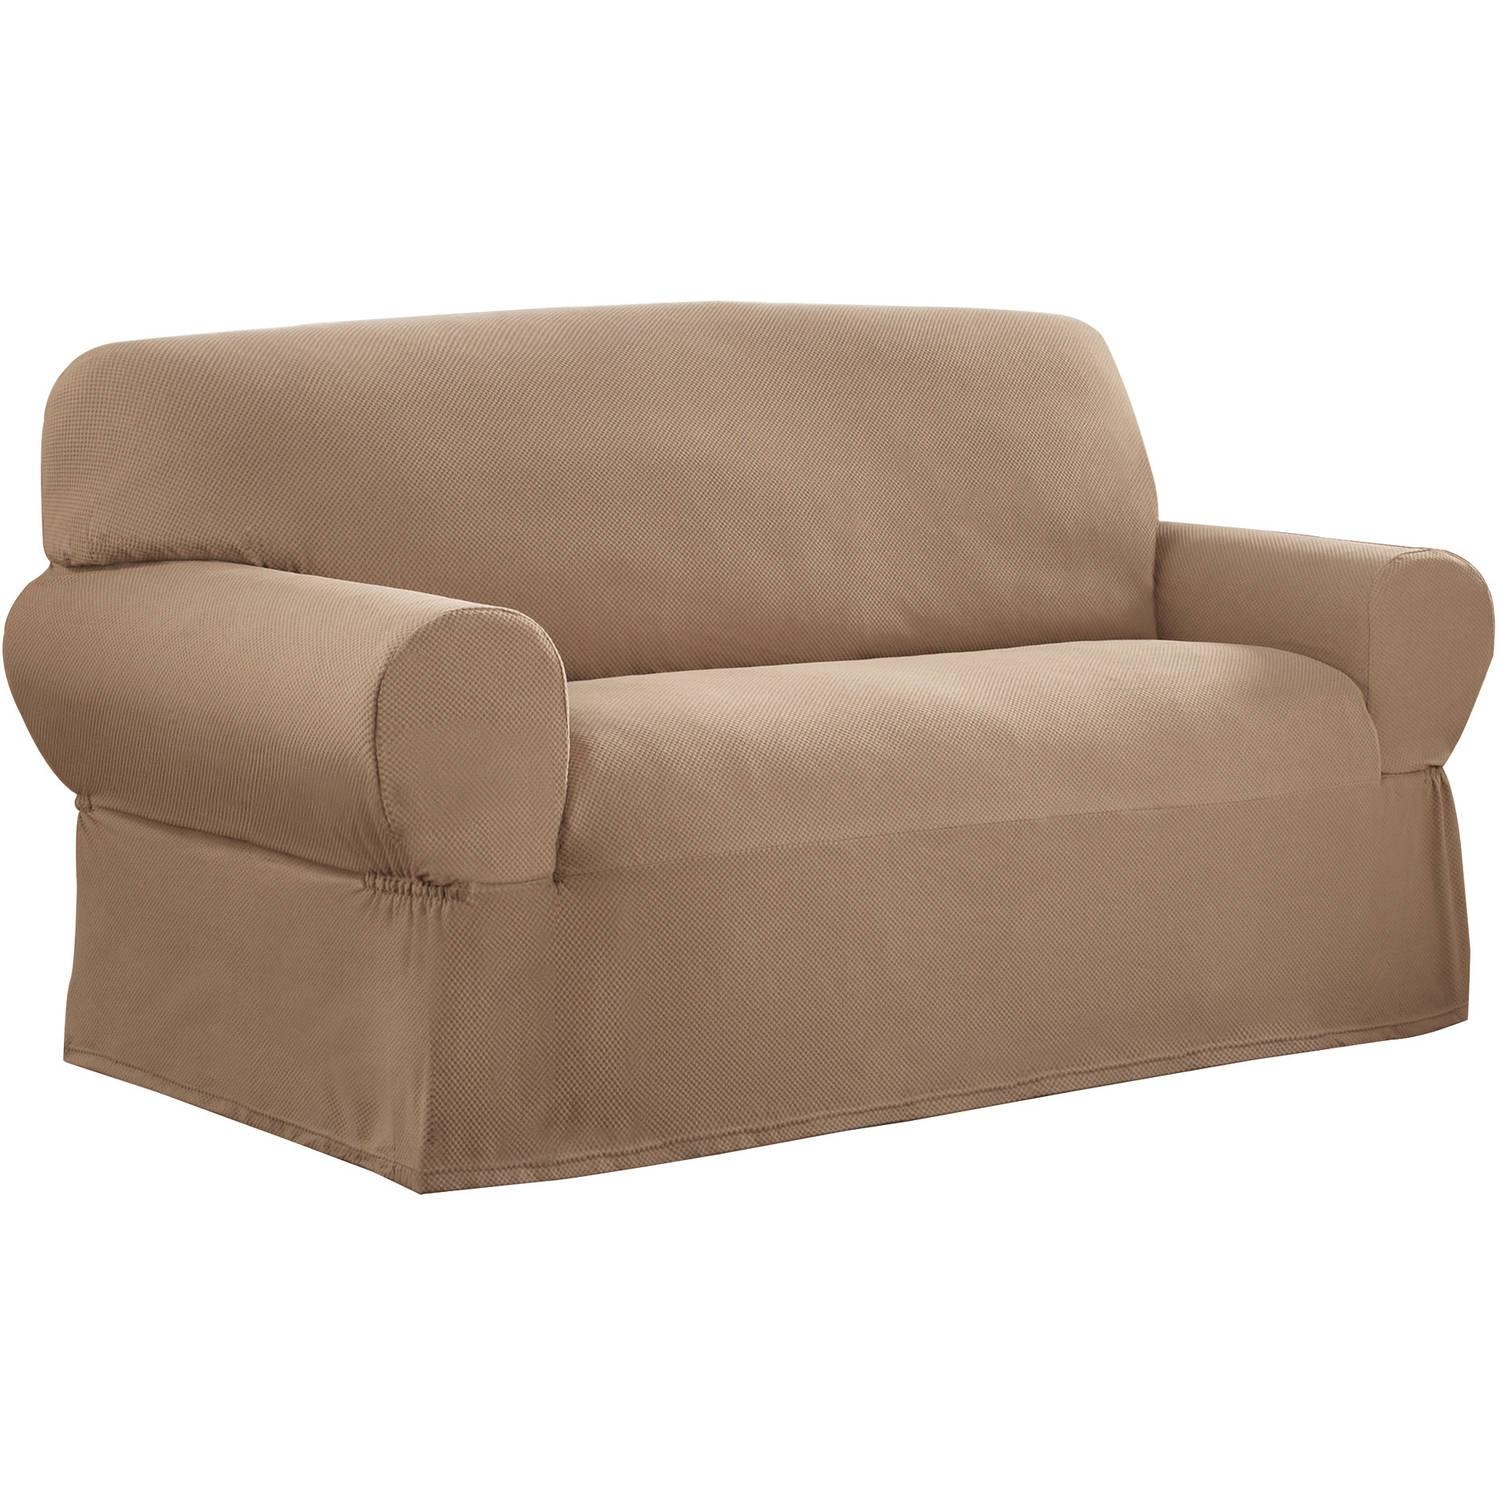 20 top loveseat slipcovers t cushion sofa ideas Loveseat slipcover